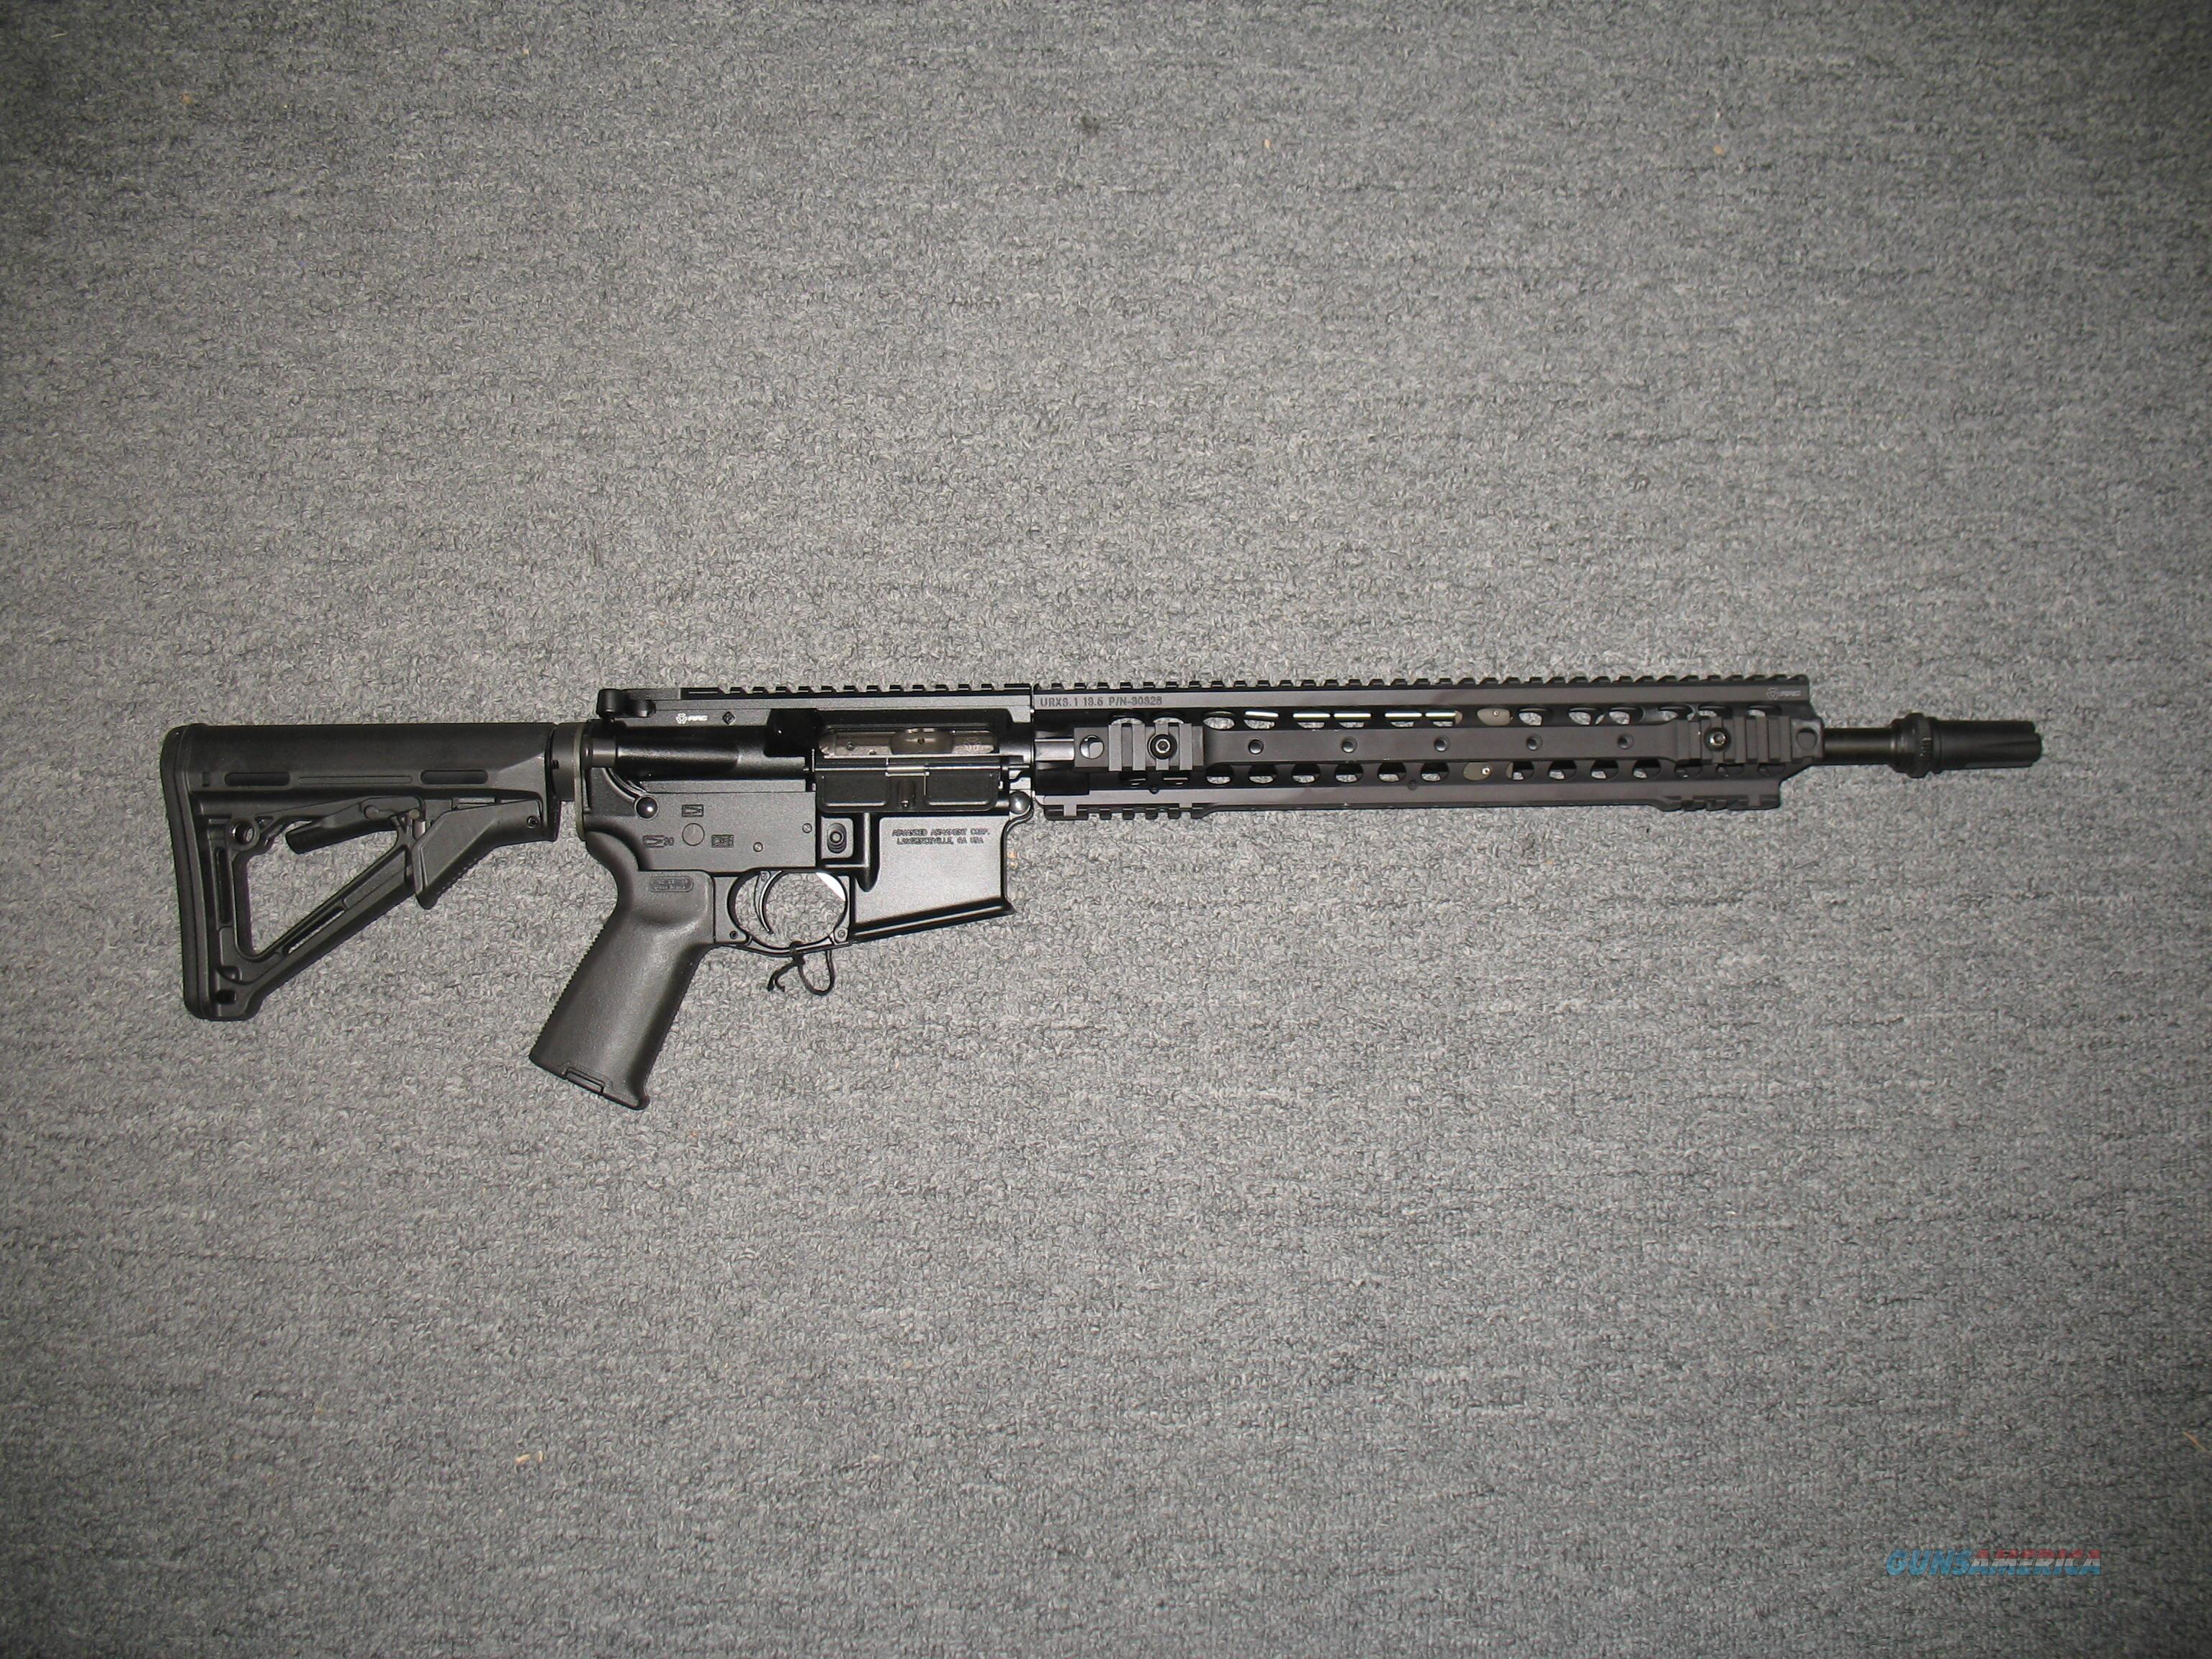 MPW (.300 AAC Blackout)  Guns > Rifles > AR-15 Rifles - Small Manufacturers > Complete Rifle